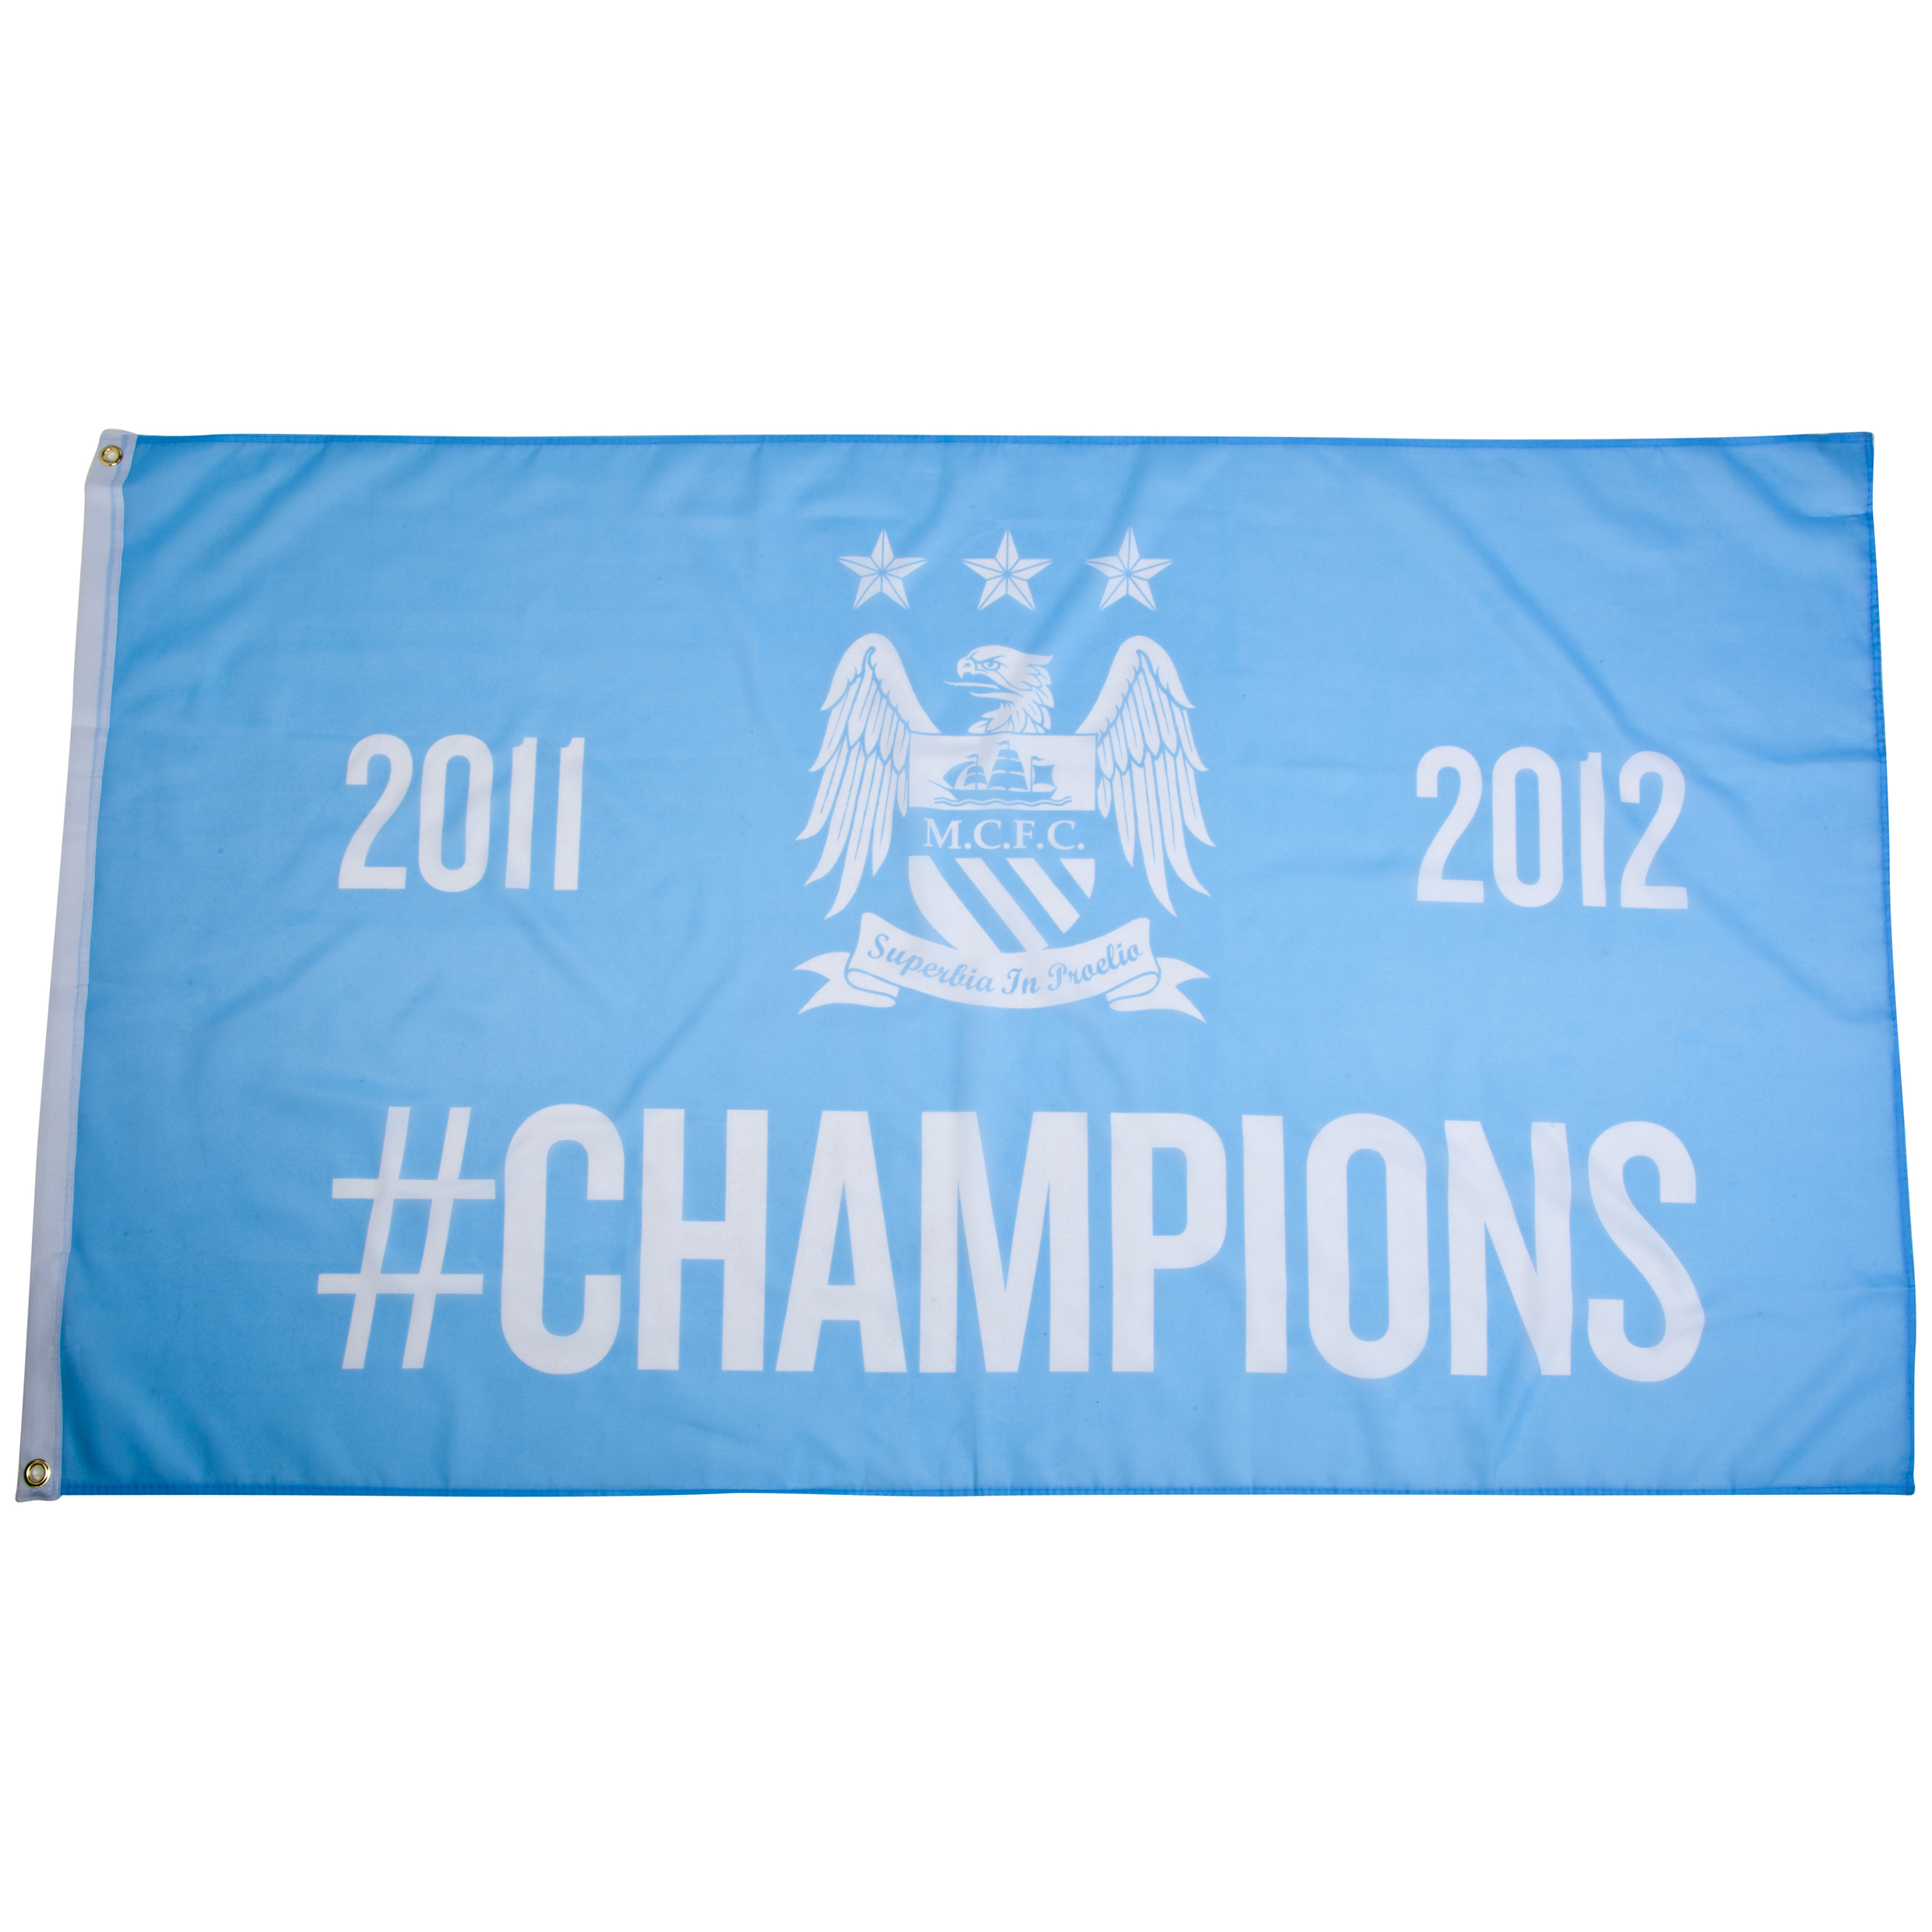 Manchester City #Champions 11/12 5x3 Flag